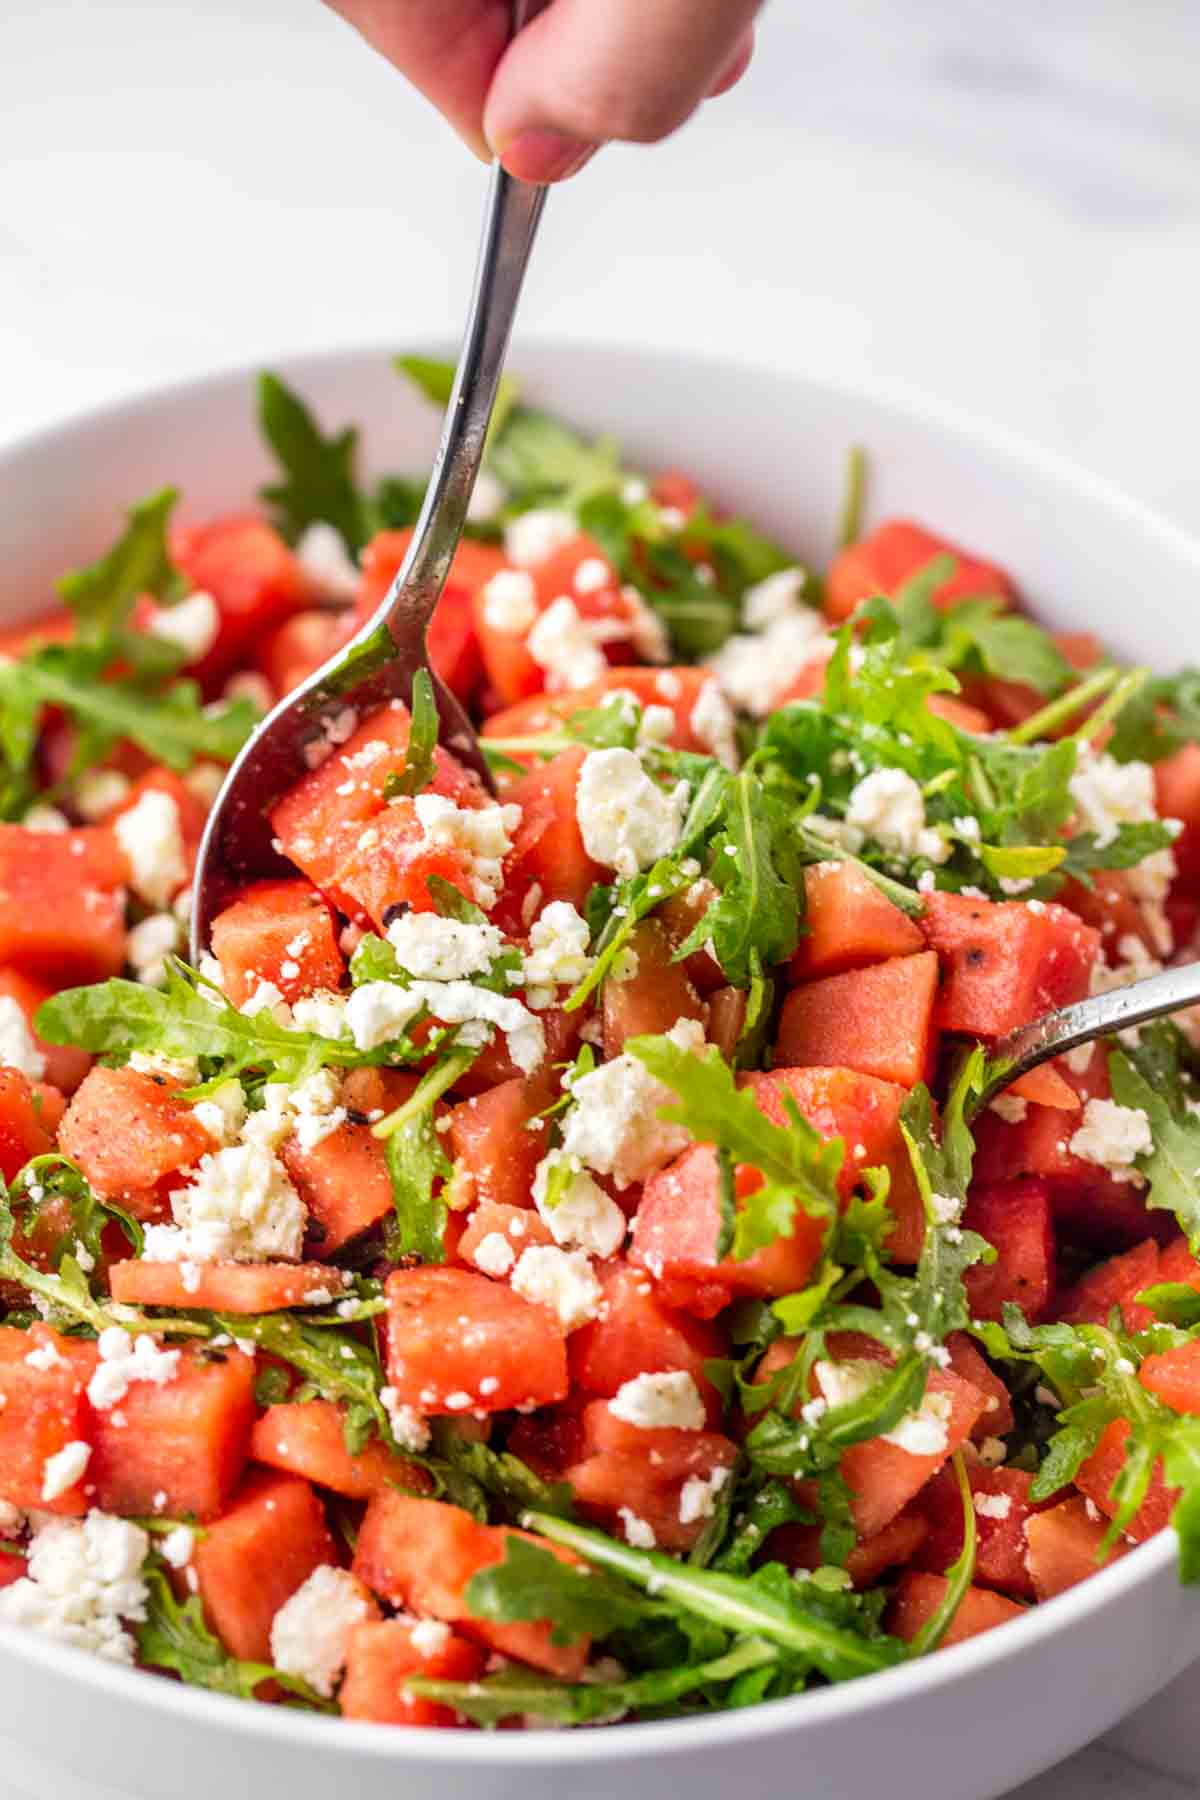 Two serving spoons used to serve watermelon salad from a large white salad bowl